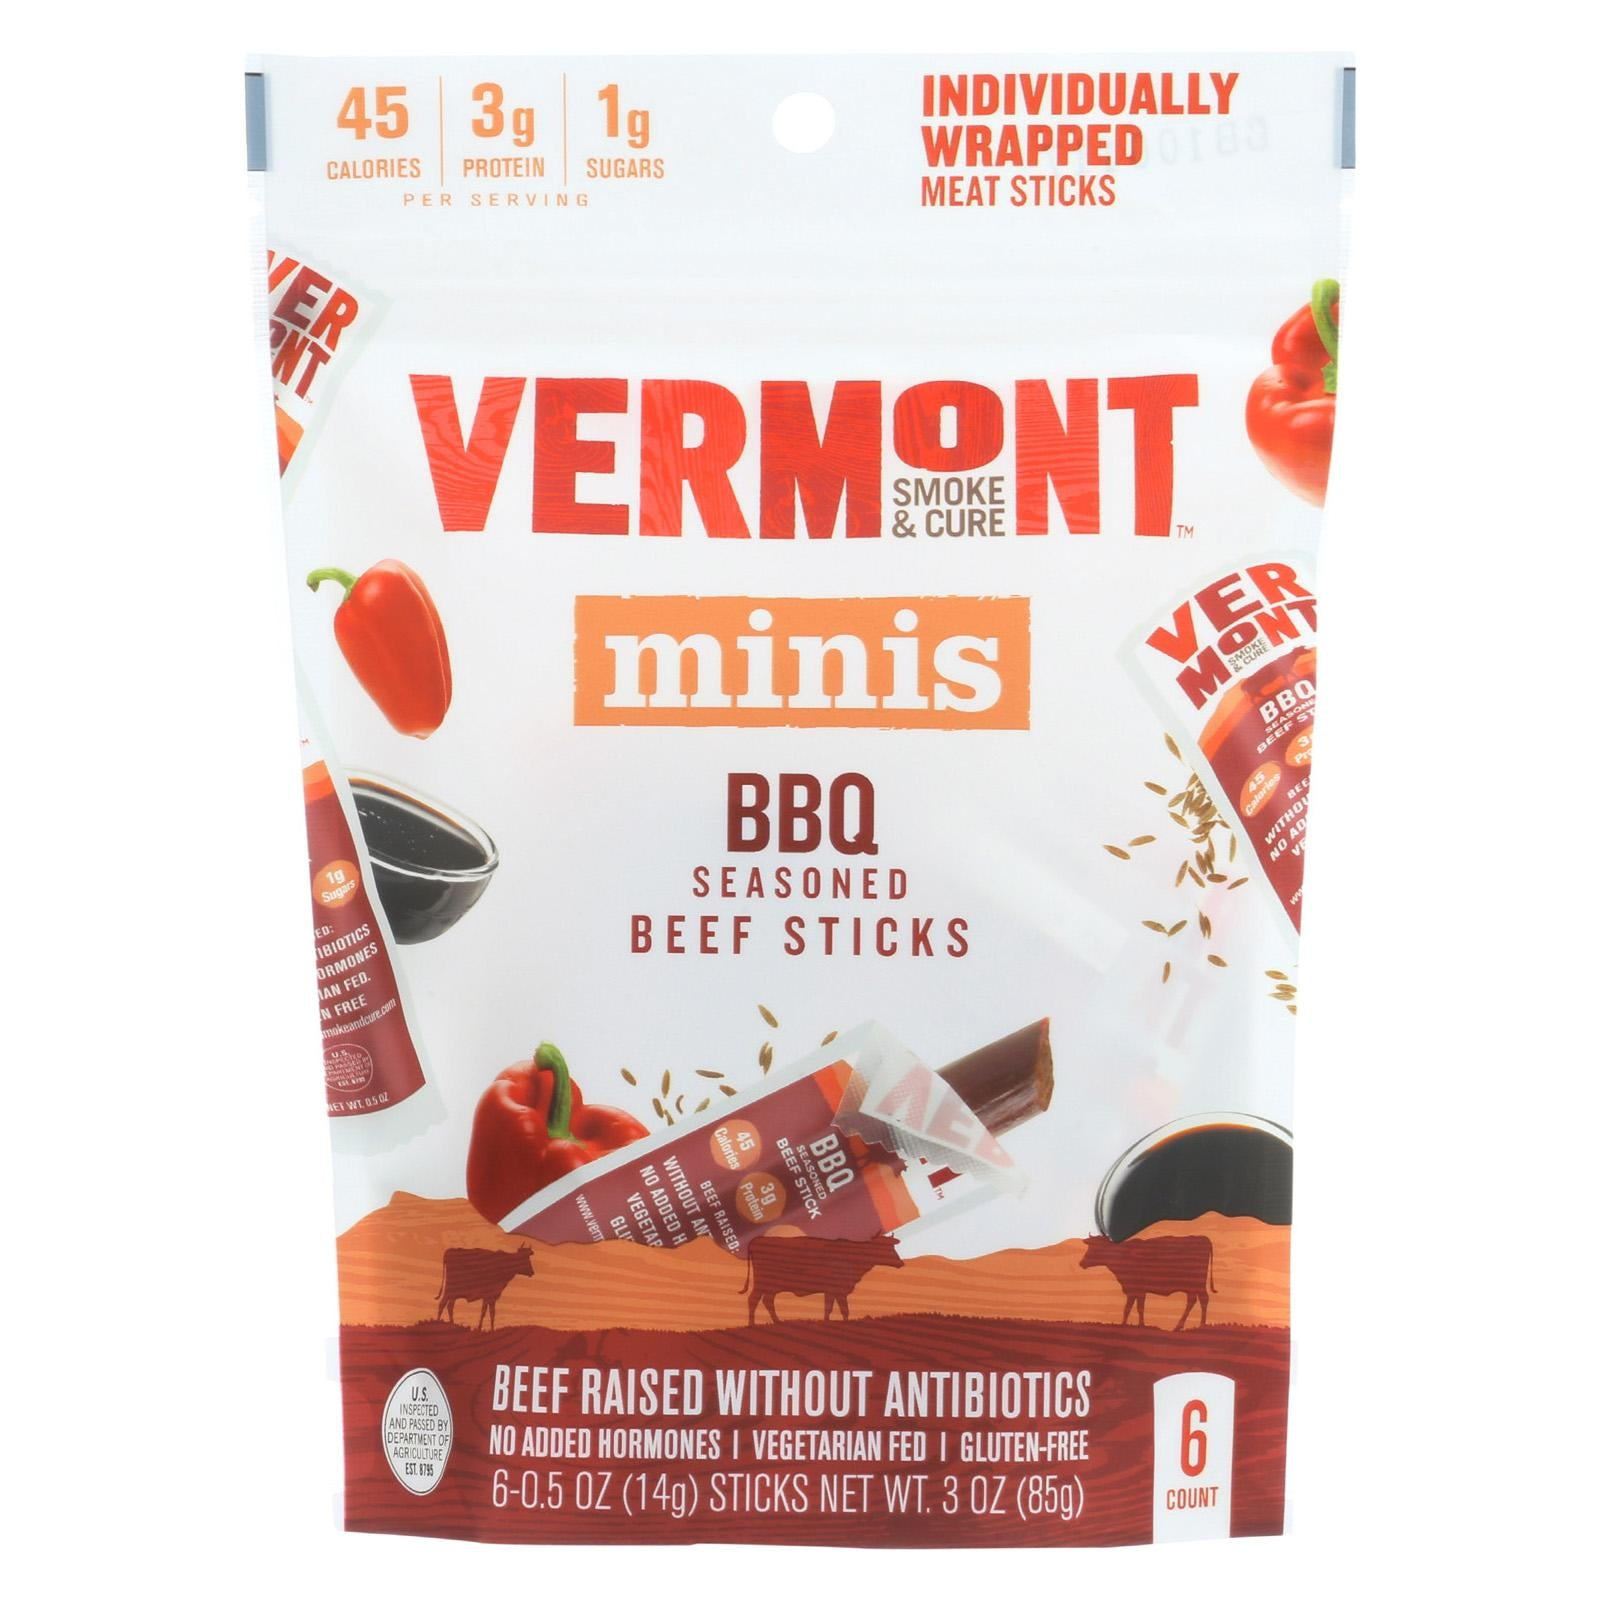 Vermont Smoke & Cure BBQ Beef Mini Sticks